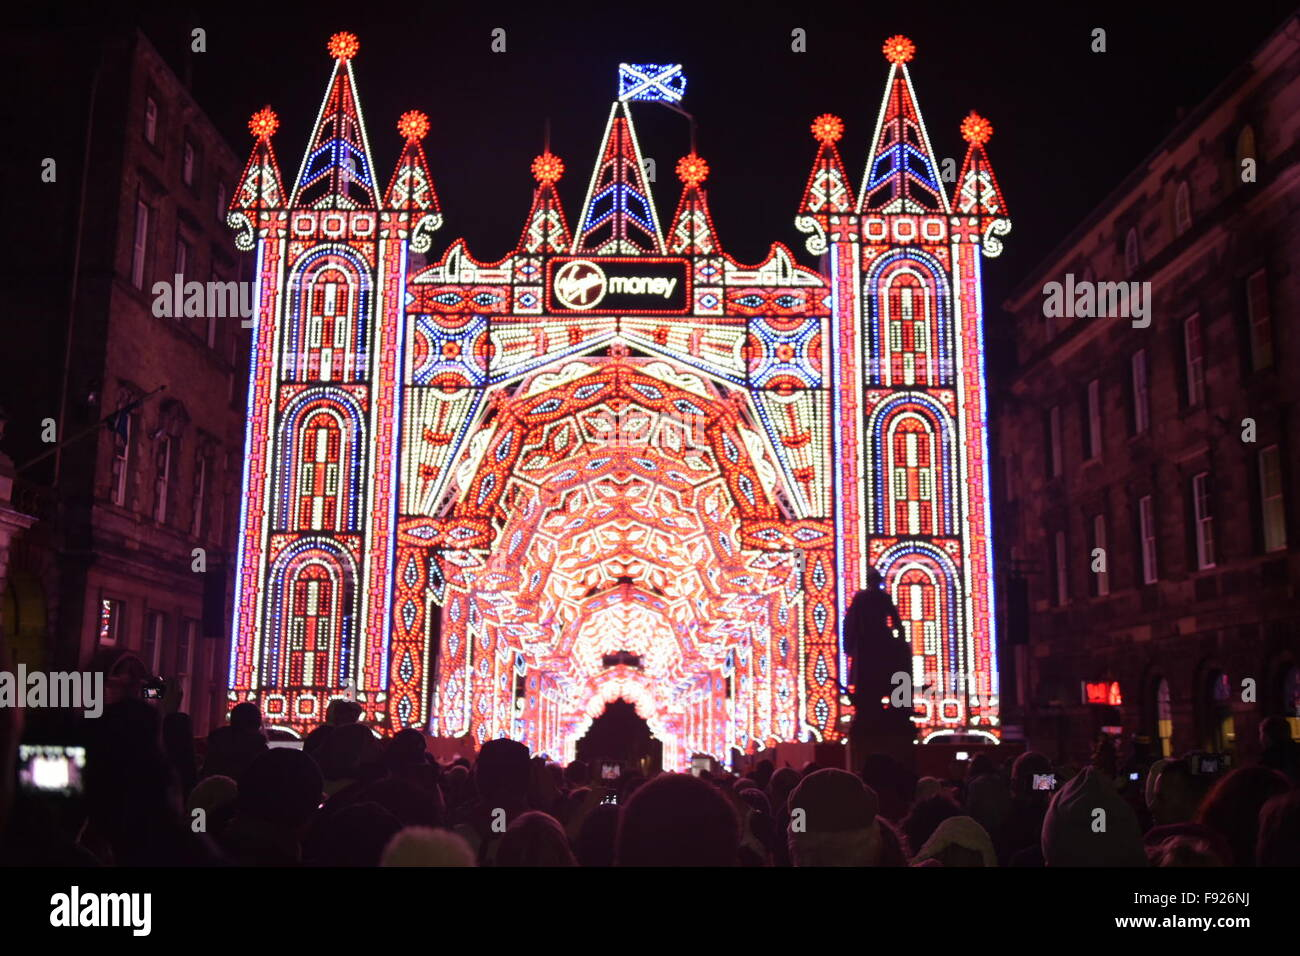 Edinburgh, Scotland, UK. 13th December, 2015. The Street of Light ...